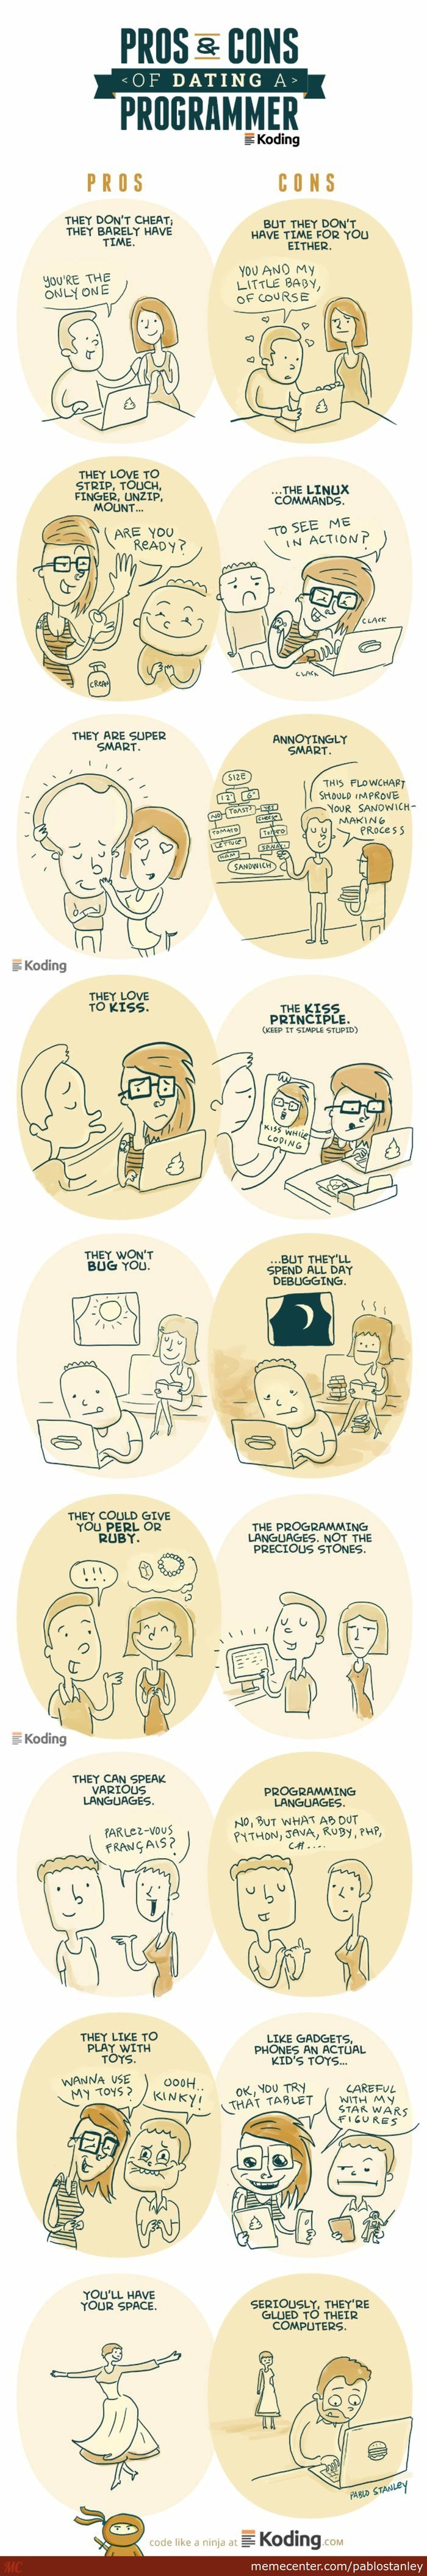 Dating a Programmer - Pro & Cons